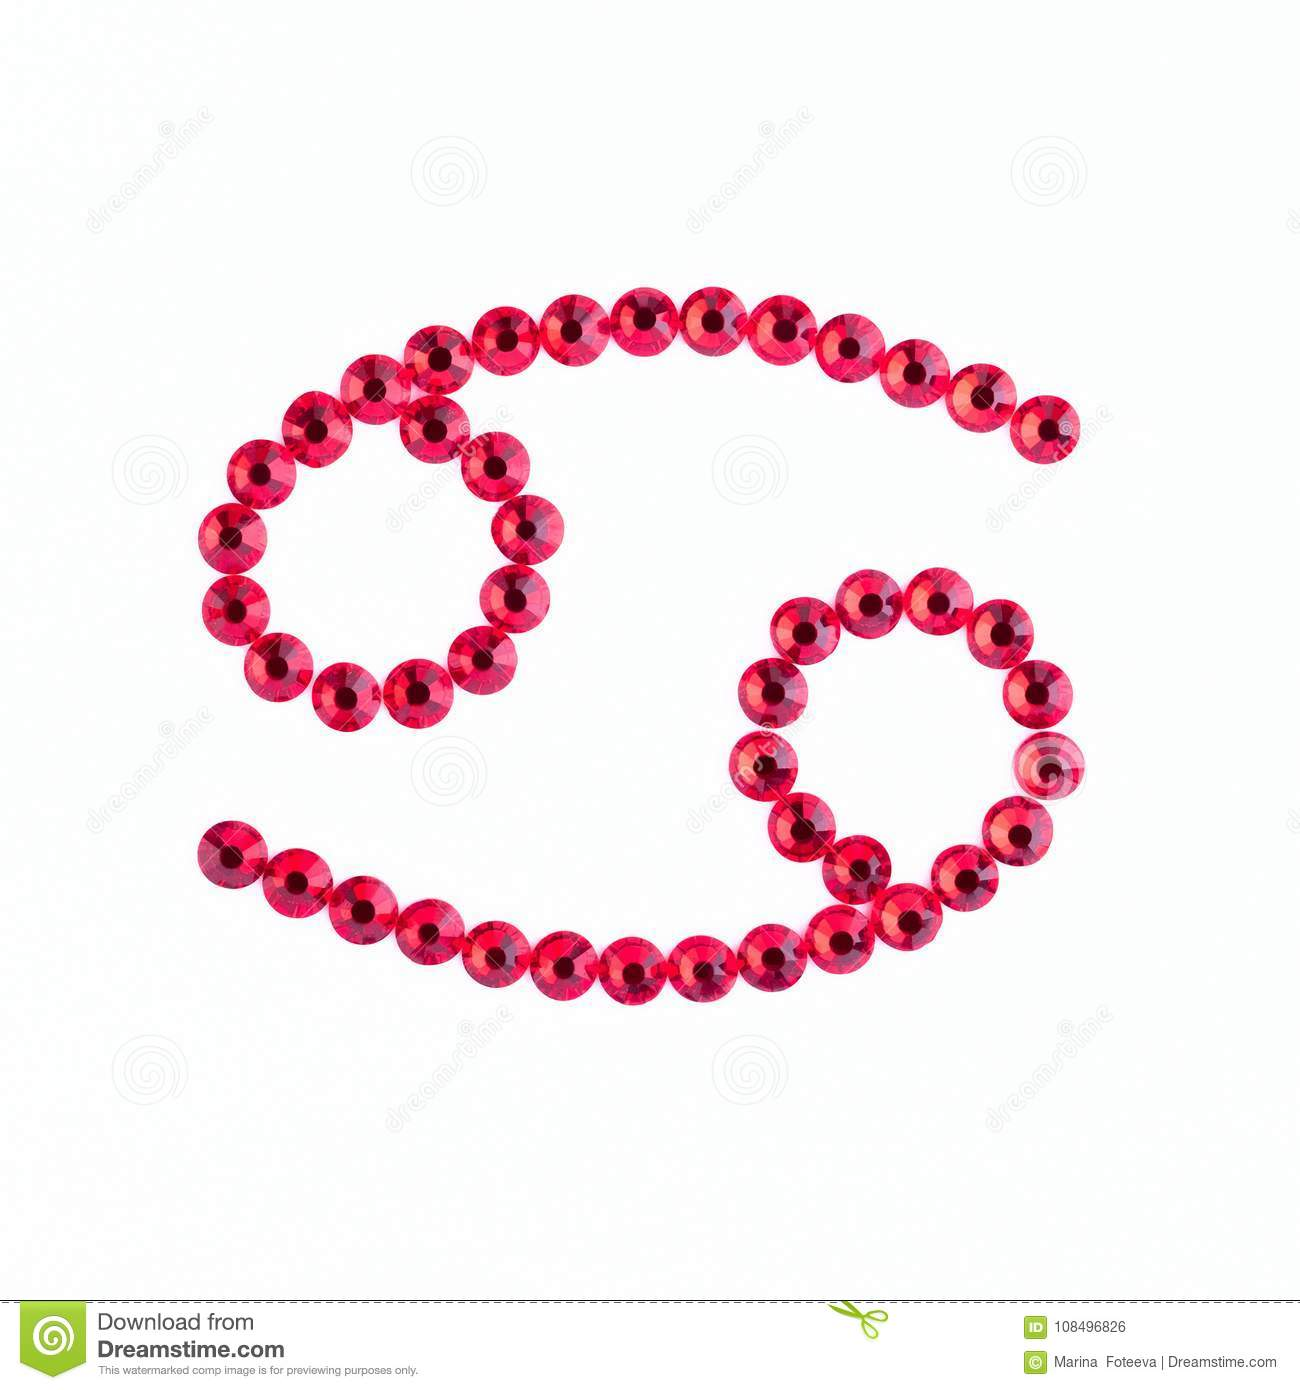 Cancer. Sign of the zodiac of red rhinestones on a white background.